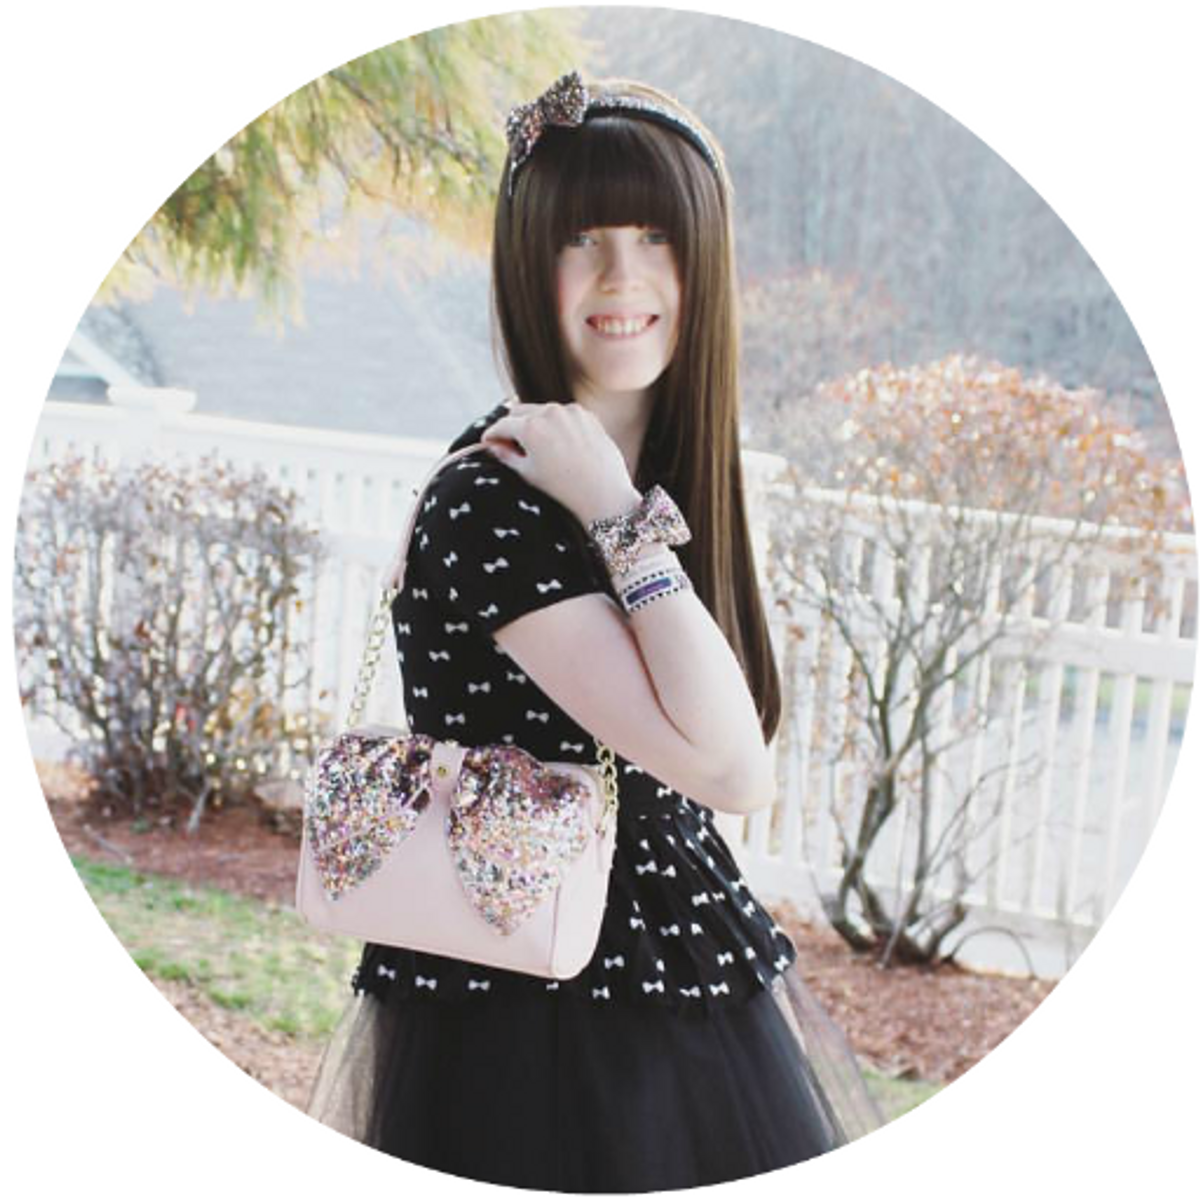 An Inspiring Interview With Editor, Writer, And Social Media Strategist, Alaina Leary